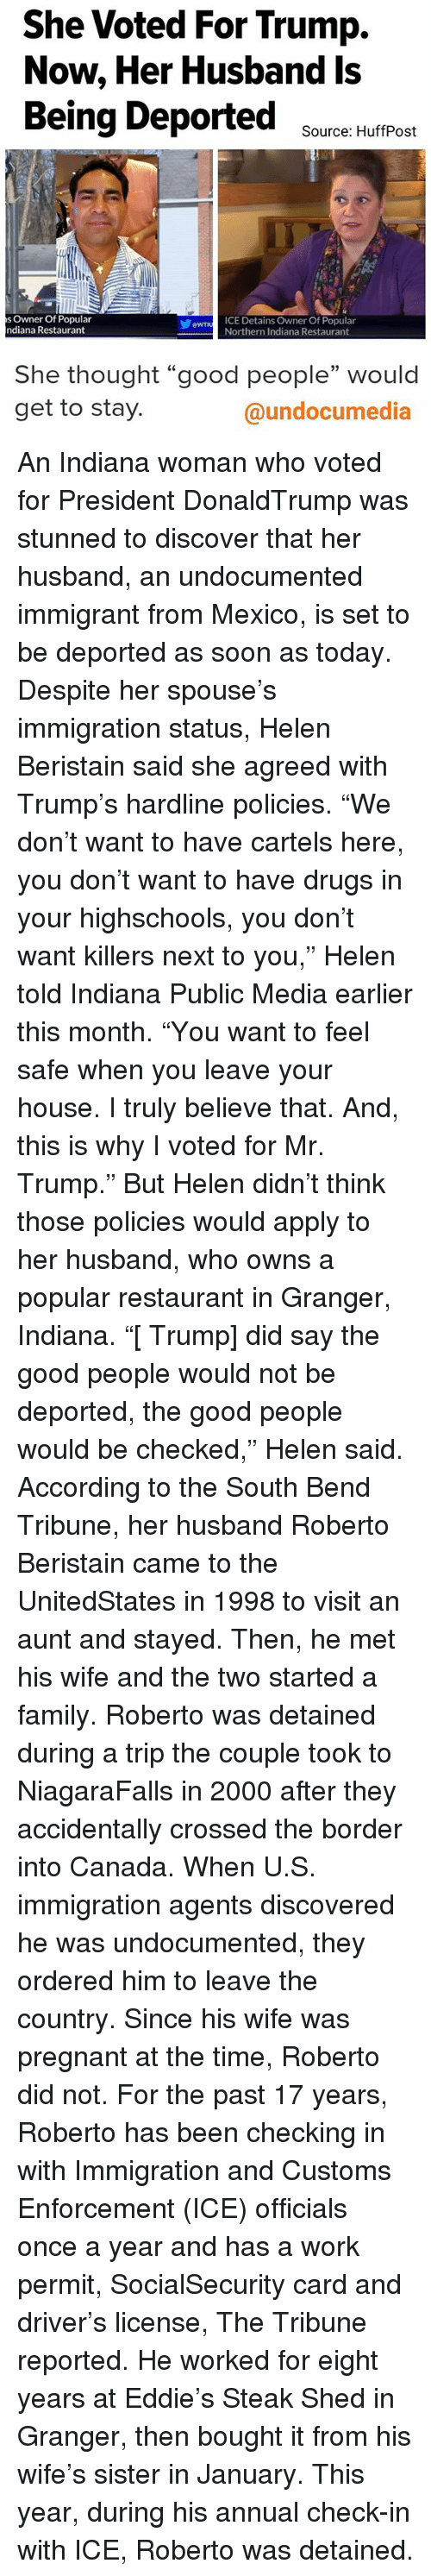 """Memes, 🤖, and Media: She Voted For Trump.  Now, Her Husband Is  Being Deported  Source: HuffPost  as Owner Of Popular  Tu ICE Detains Owner Of Popular  ndiana Restaurant  Northern Indiana Restaurant  She thought """"good people"""" would  get to stay.  @undocumedia An Indiana woman who voted for President DonaldTrump was stunned to discover that her husband, an undocumented immigrant from Mexico, is set to be deported as soon as today. Despite her spouse's immigration status, Helen Beristain said she agreed with Trump's hardline policies. """"We don't want to have cartels here, you don't want to have drugs in your highschools, you don't want killers next to you,"""" Helen told Indiana Public Media earlier this month. """"You want to feel safe when you leave your house. I truly believe that. And, this is why I voted for Mr. Trump."""" But Helen didn't think those policies would apply to her husband, who owns a popular restaurant in Granger, Indiana. """"[ Trump] did say the good people would not be deported, the good people would be checked,"""" Helen said. According to the South Bend Tribune, her husband Roberto Beristain came to the UnitedStates in 1998 to visit an aunt and stayed. Then, he met his wife and the two started a family. Roberto was detained during a trip the couple took to NiagaraFalls in 2000 after they accidentally crossed the border into Canada. When U.S. immigration agents discovered he was undocumented, they ordered him to leave the country. Since his wife was pregnant at the time, Roberto did not. For the past 17 years, Roberto has been checking in with Immigration and Customs Enforcement (ICE) officials once a year and has a work permit, SocialSecurity card and driver's license, The Tribune reported. He worked for eight years at Eddie's Steak Shed in Granger, then bought it from his wife's sister in January. This year, during his annual check-in with ICE, Roberto was detained."""